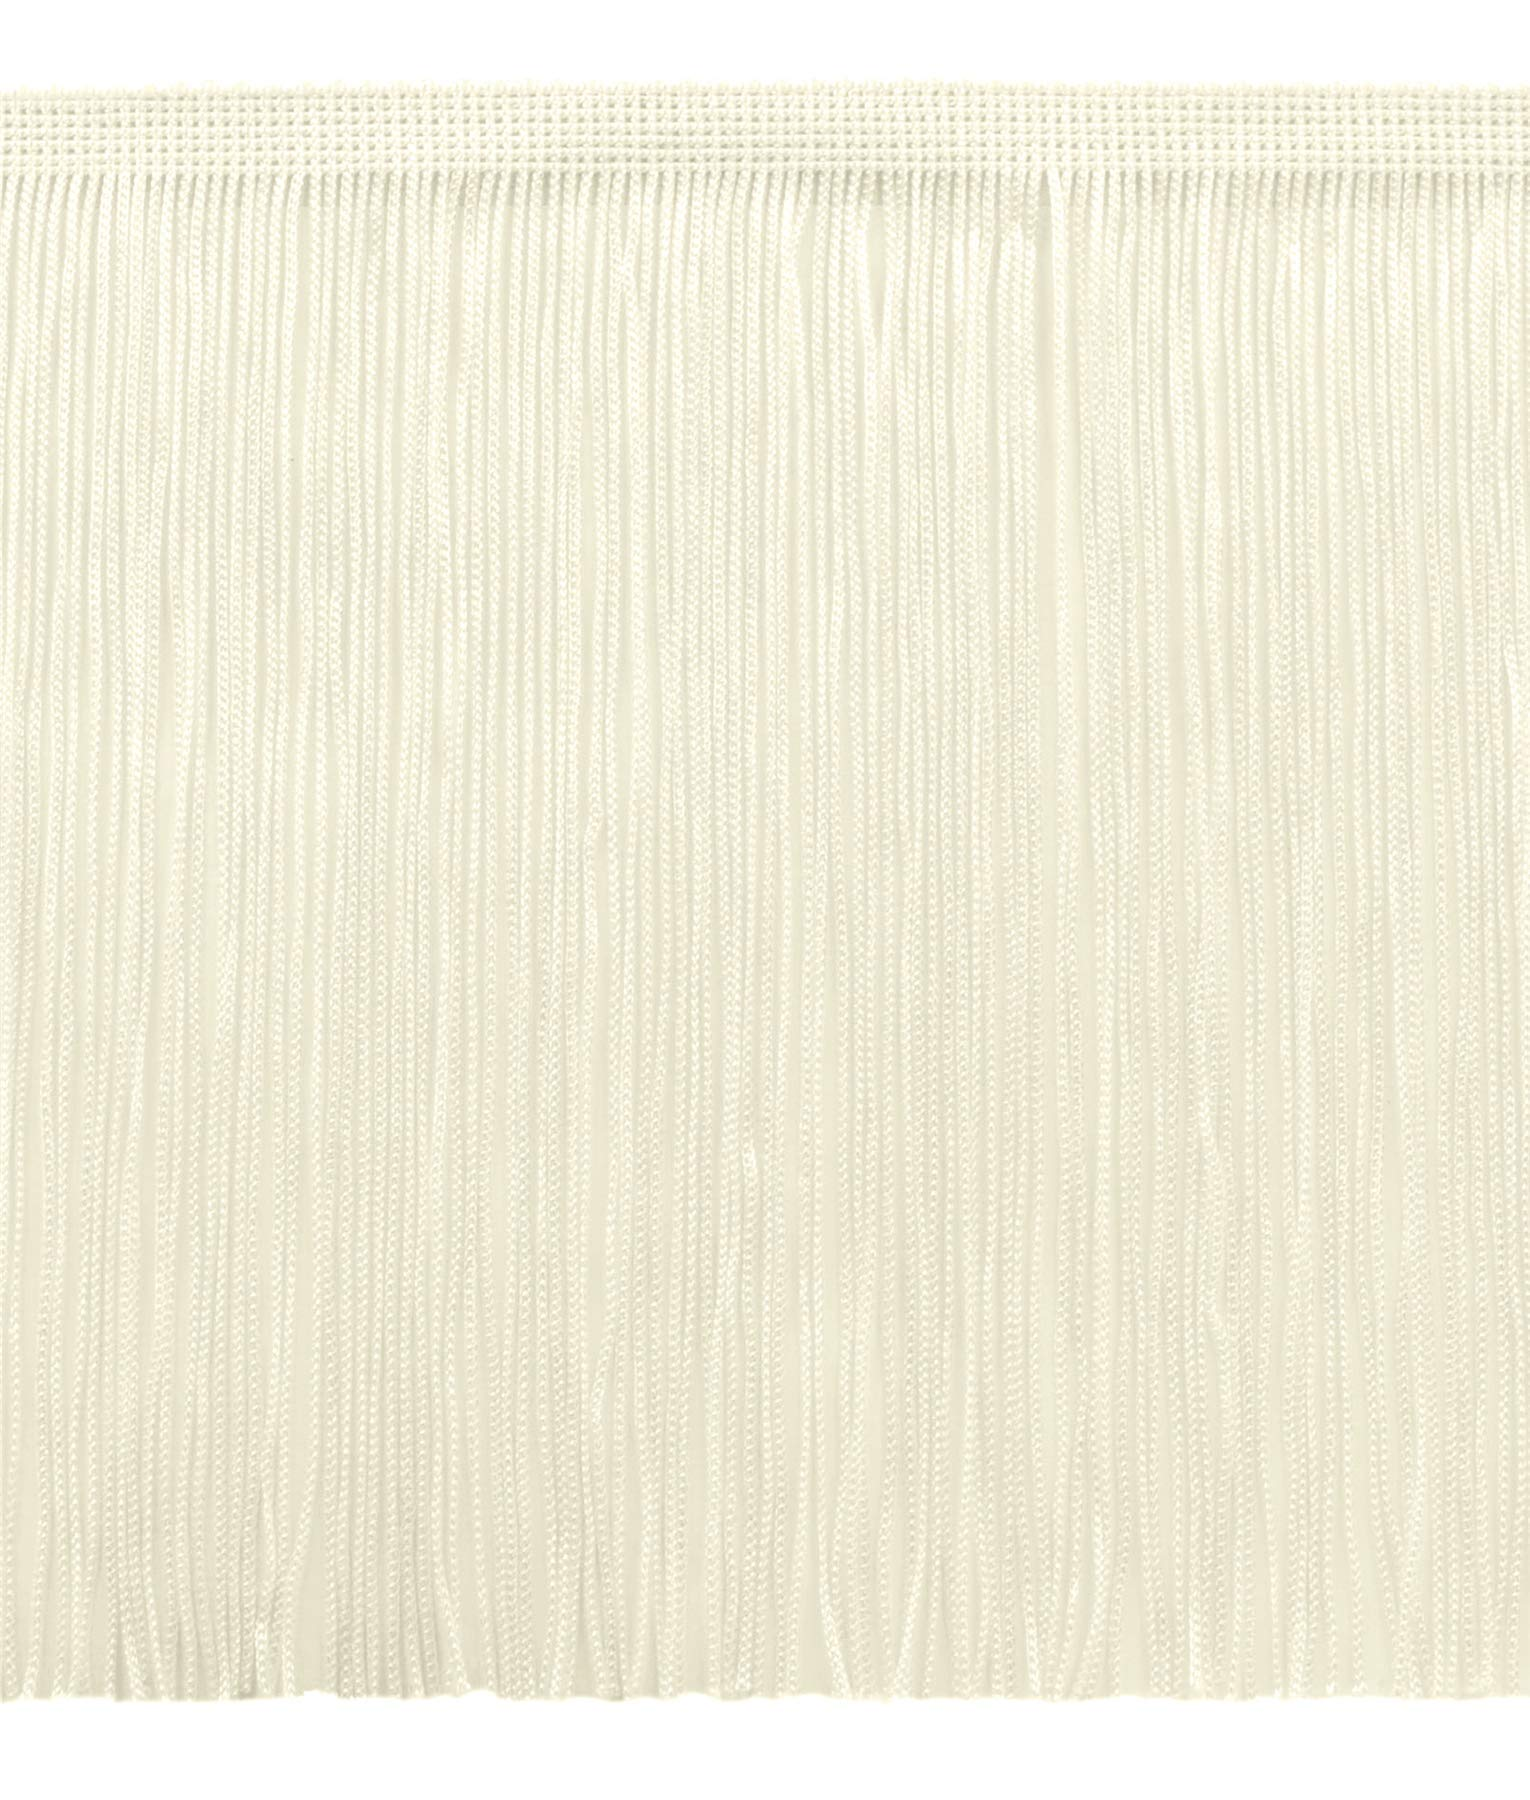 DÉCOPRO 11 Yard Value Pack of 8 Inch Chainette Fringe Trim, Style# CF08 Color: Ivory (Off White) - OW (32.5 Feet / 10M) by DÉCOPRO